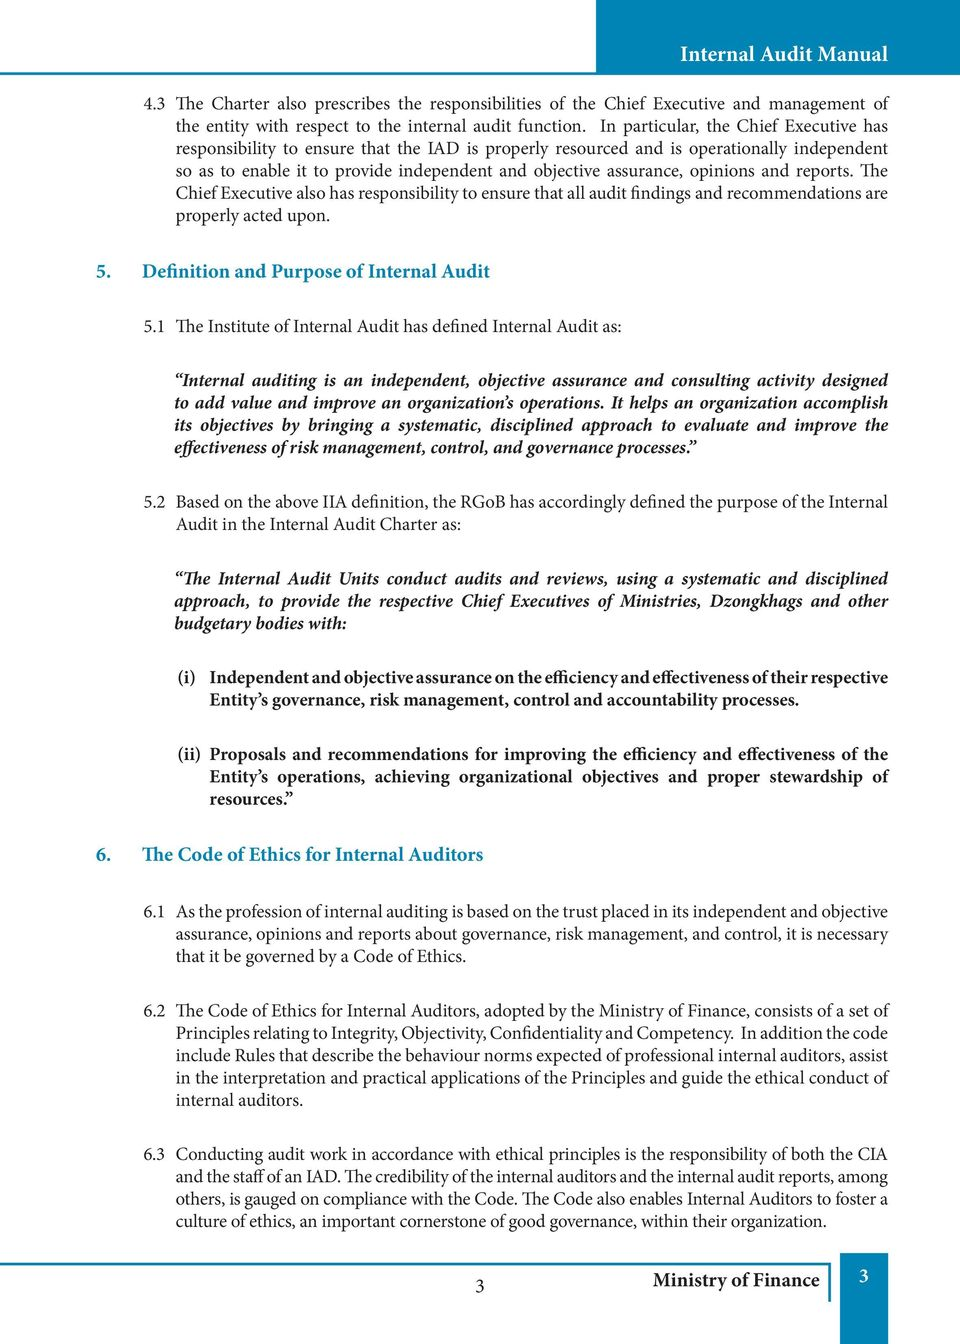 opinions and reports. The Chief Executive also has responsibility to ensure that all audit findings and recommendations are properly acted upon. 5. Definition and Purpose of Internal Audit 5.